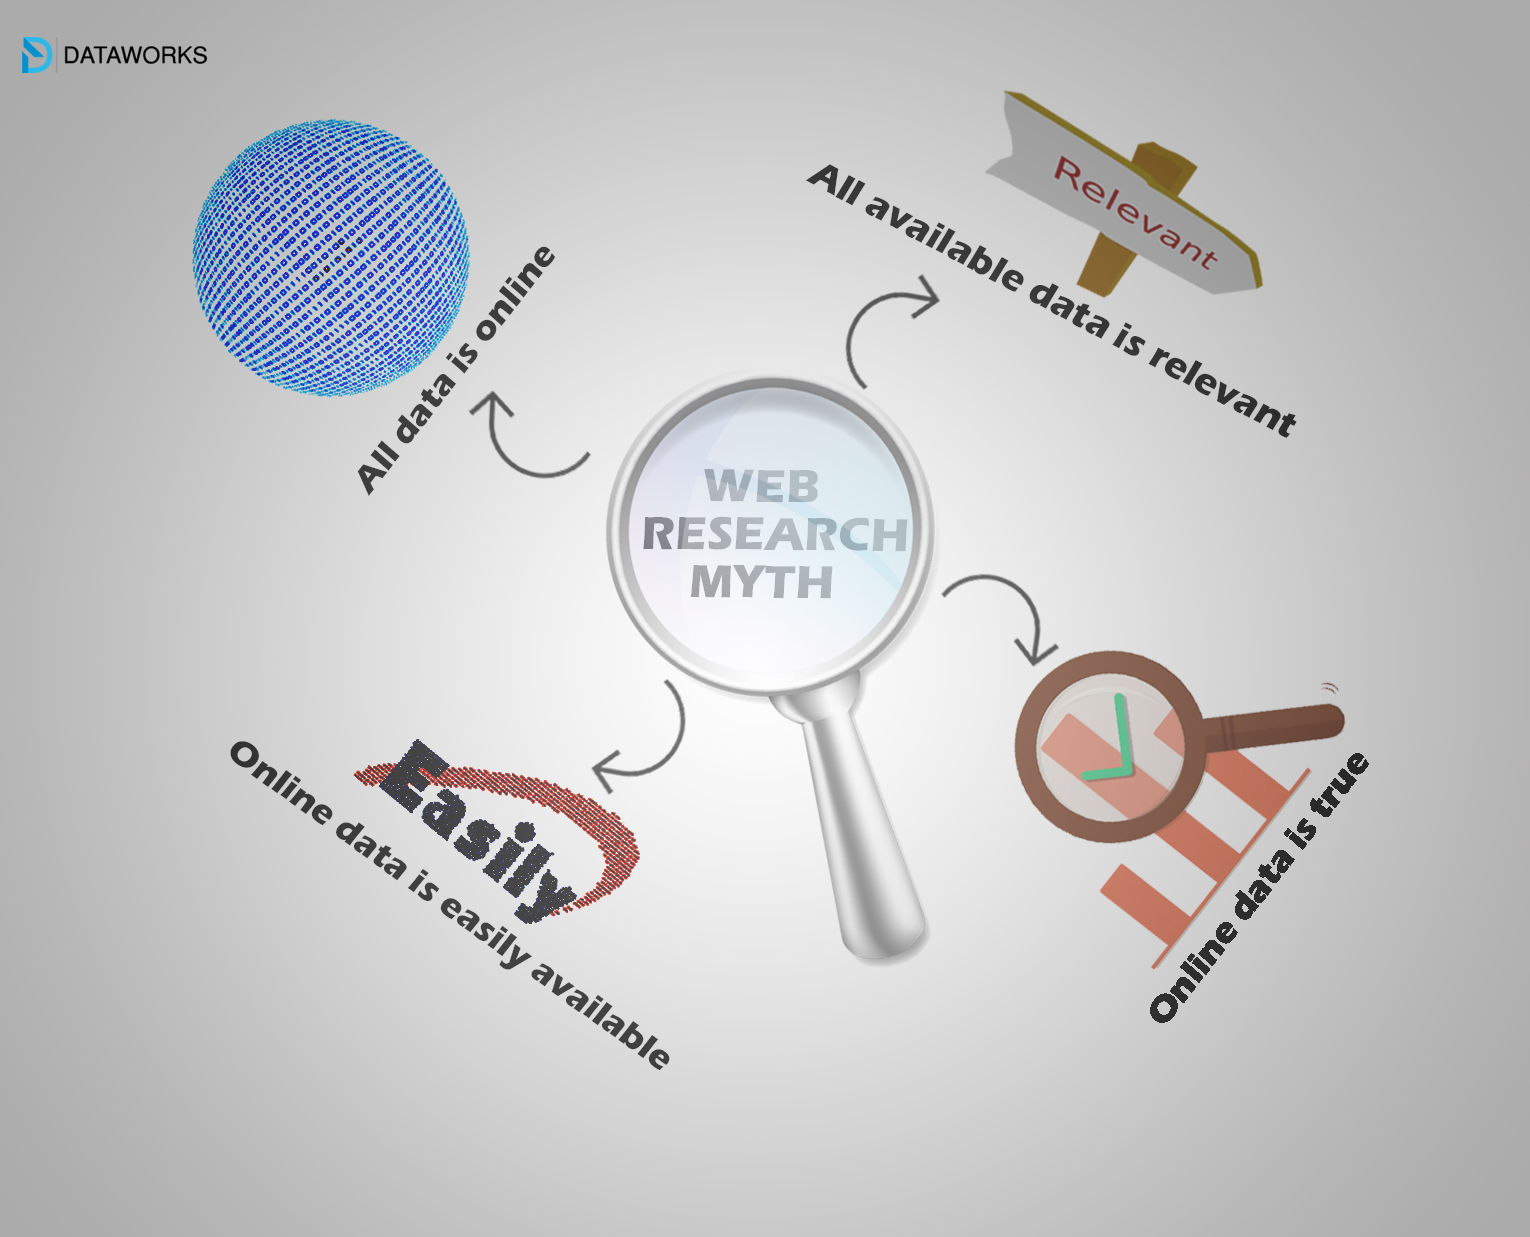 Myths about using web for research